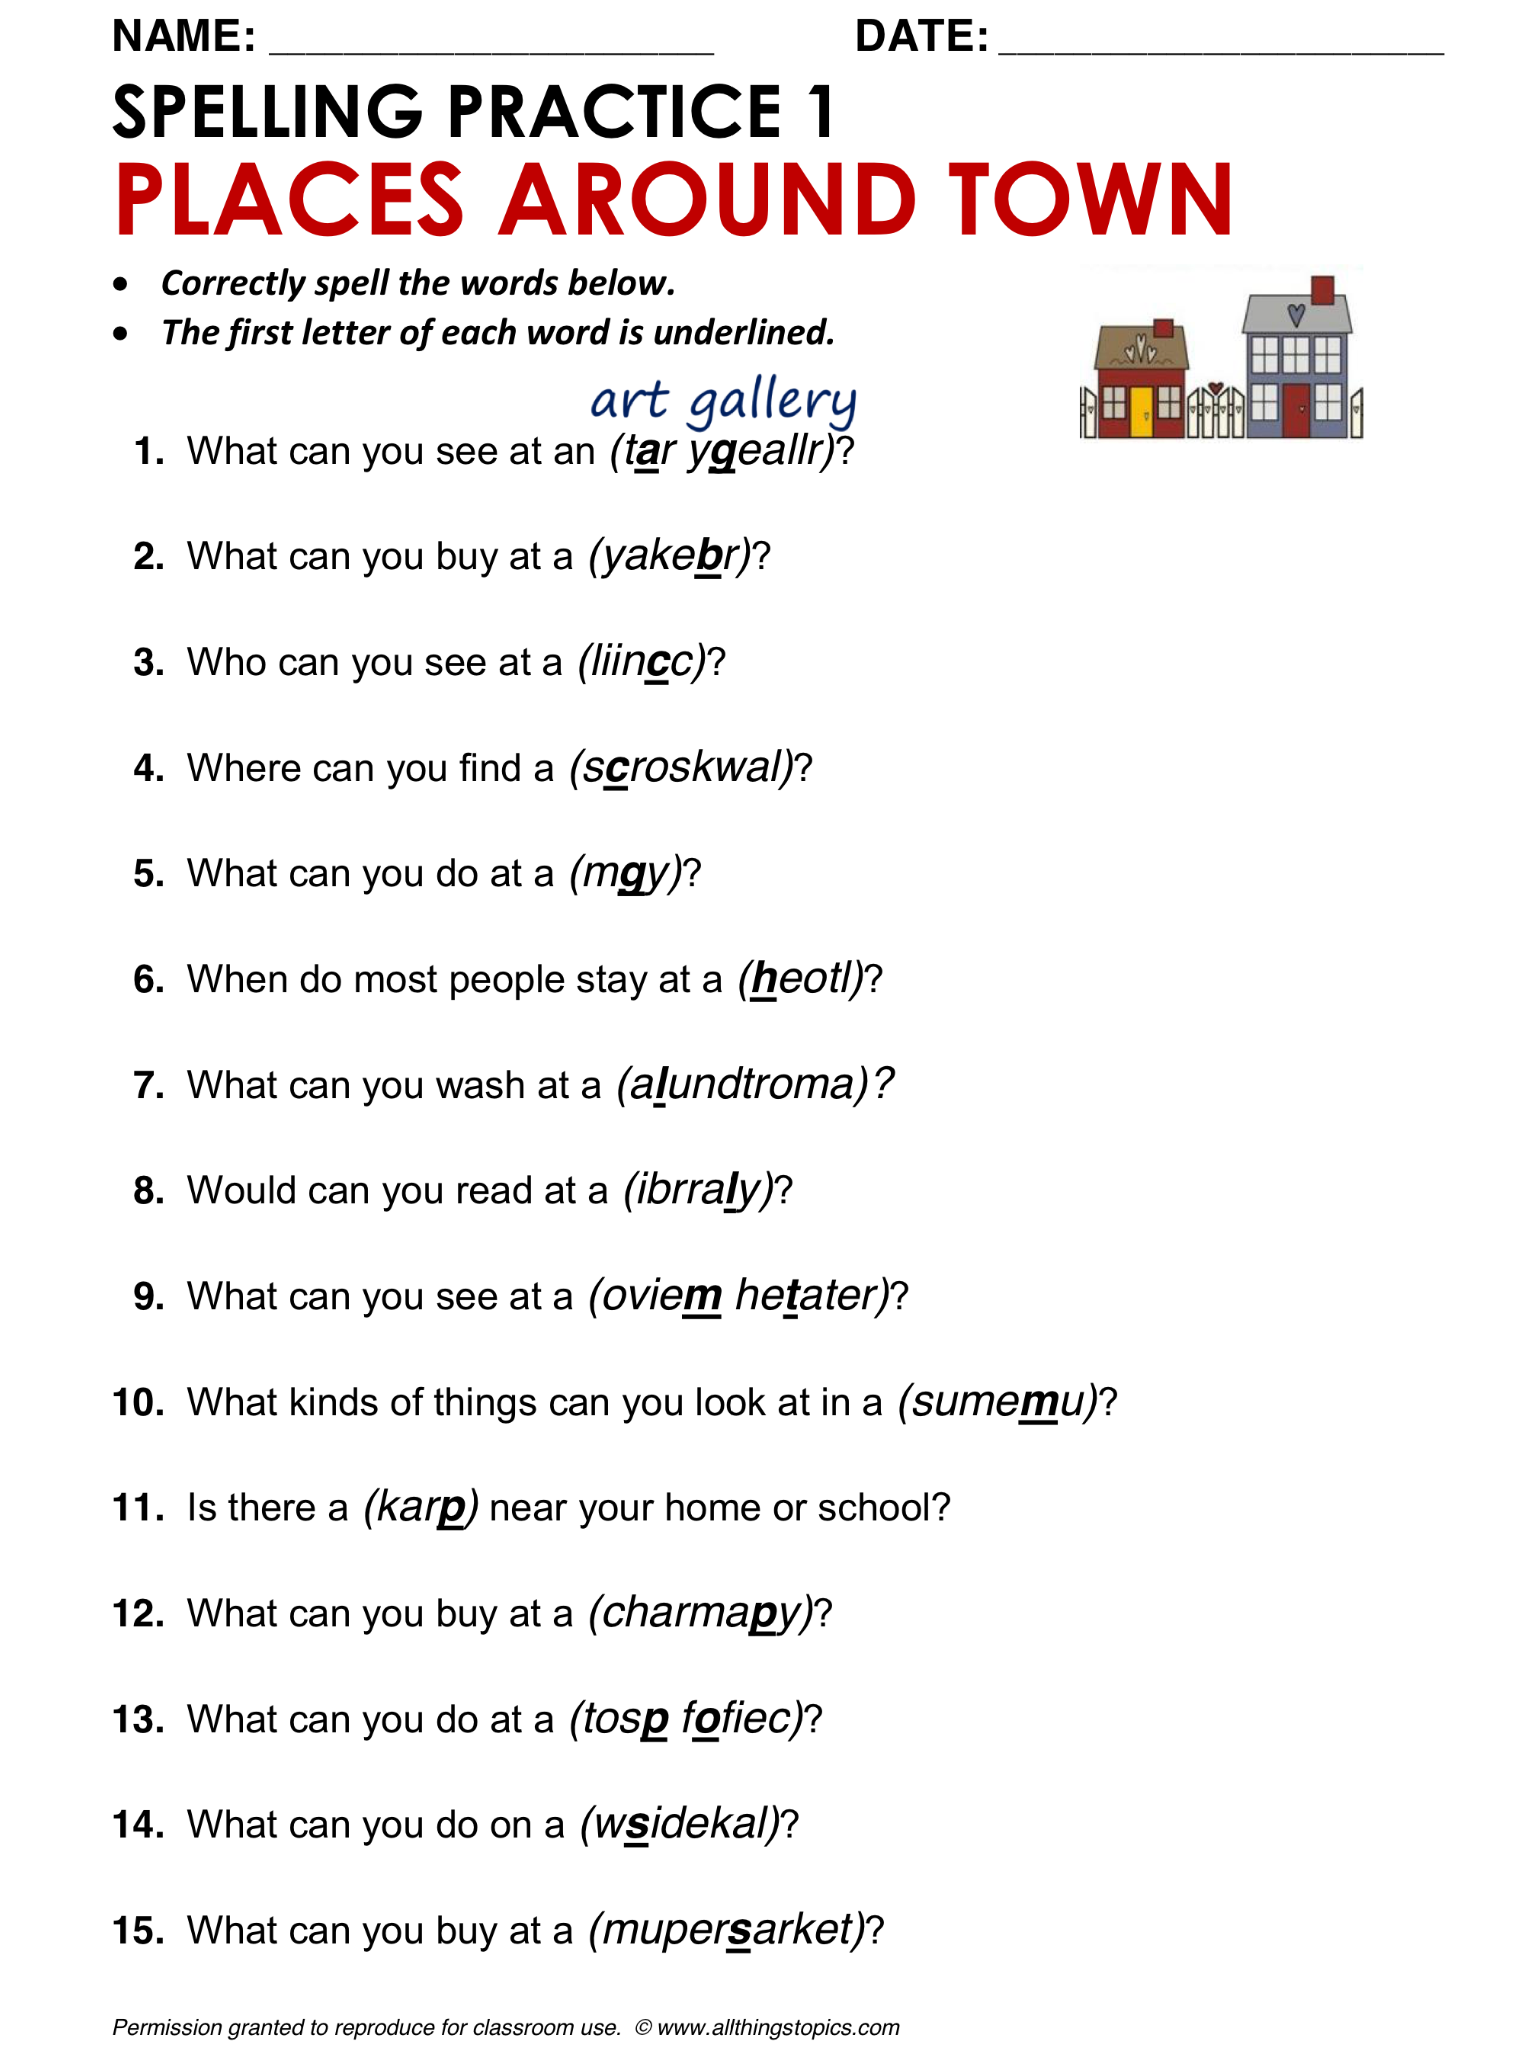 Worksheets Learning English : Spelling worksheet speaking and vocab practice places